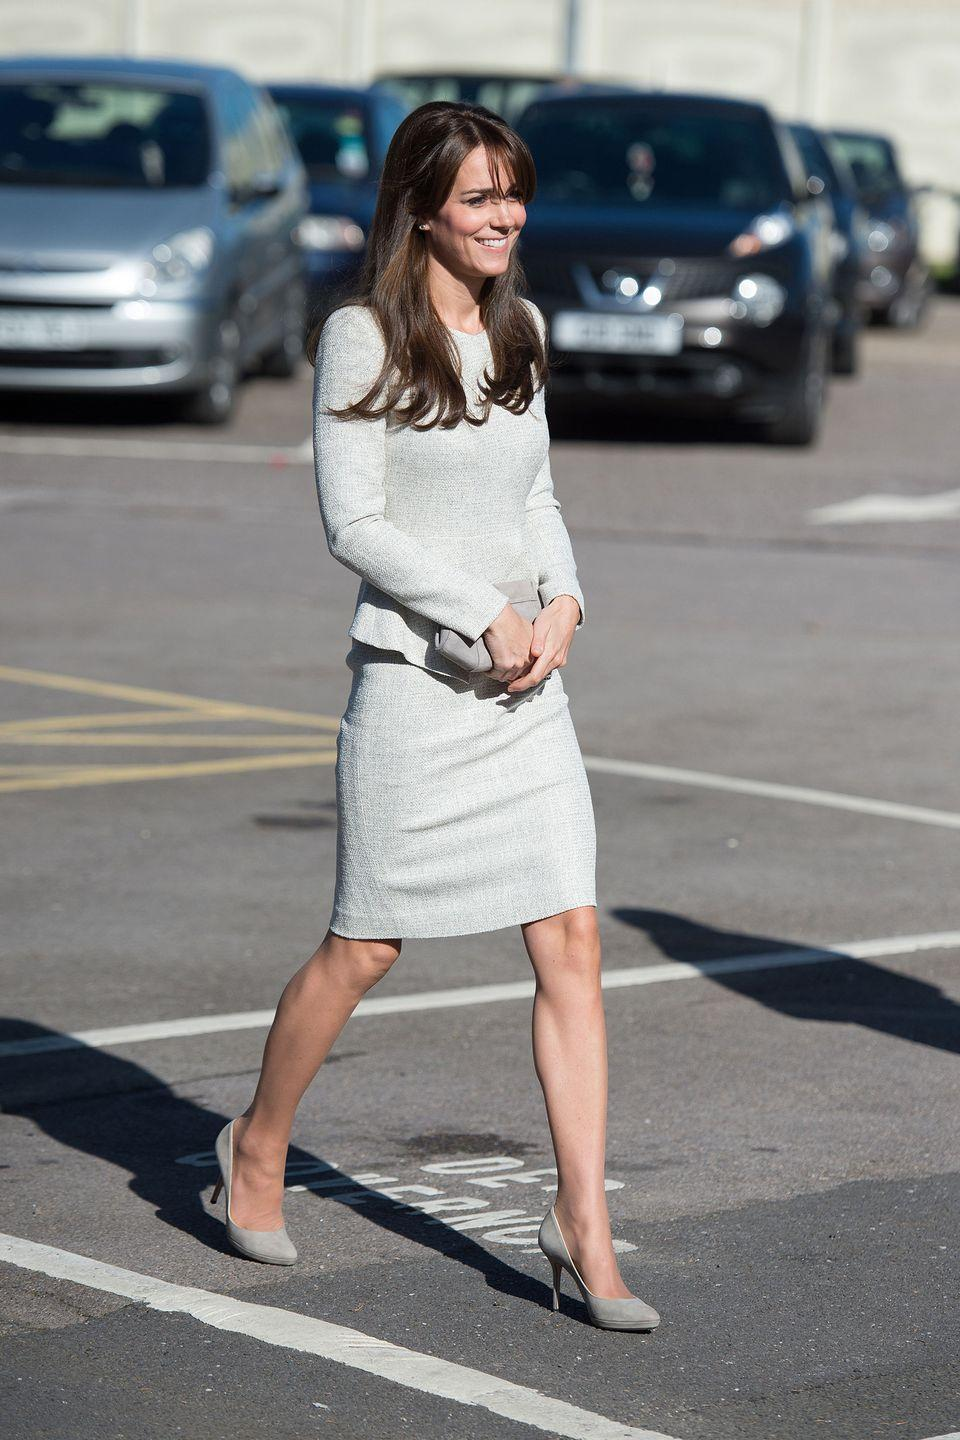 """<p>The Duchess pays a visit to the Rehabilitation of Addicted Prisoners Trust, a women's prison in Surrey, England, in a modest dress by <a href=""""https://thefoldlondon.com/product/eaton-dress-spring-white-tweed-ps15/"""" rel=""""nofollow noopener"""" target=""""_blank"""" data-ylk=""""slk:The Fold"""" class=""""link rapid-noclick-resp"""">The Fold</a>.</p>"""